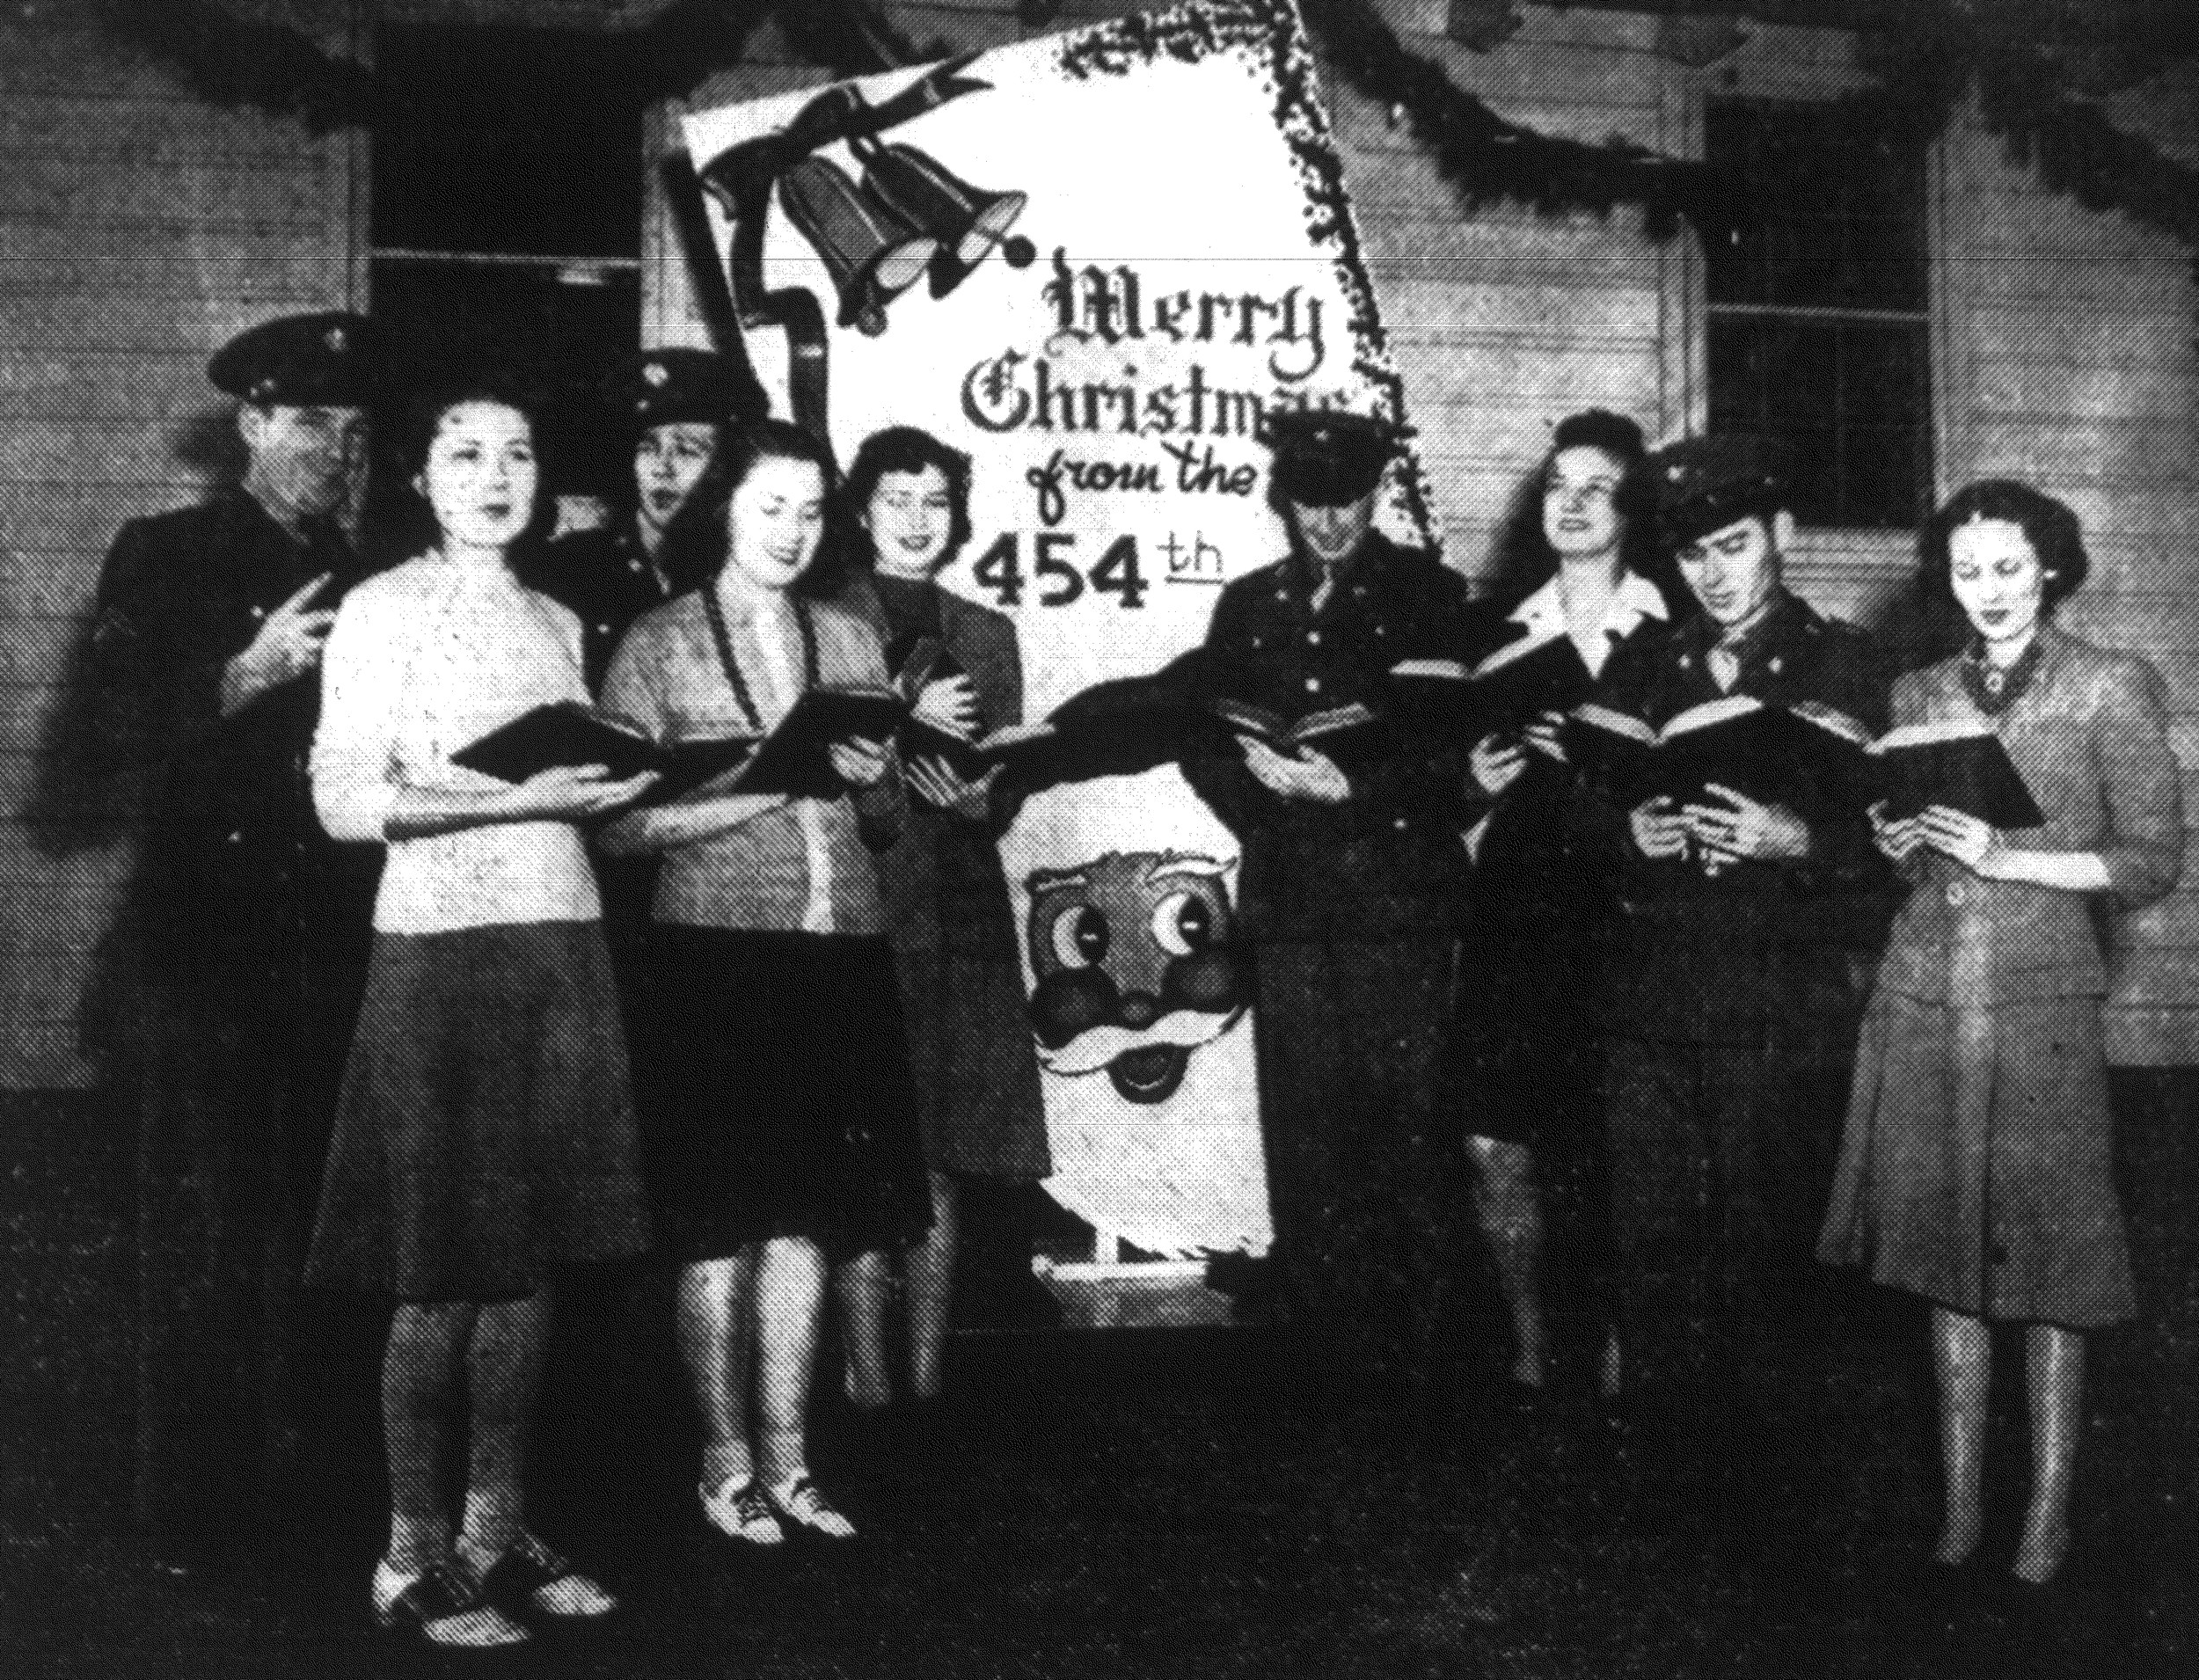 1942 - Soldiers and civilians join voices in welcoming the yuletide at the Army's Basic Flying School at Shaw Field. Gathered in front of one of the squadron dayrooms to sting out their greetings are the Missess Pansy Howell, Mary Elizabeth Rigby, Sherry Hook, Margarita Baldwin and Claire Gregg, all post headquarters employees; and Staff Sgt. Jack Lewis, Cpl. Vincent Sherwin, Cpl. Bill Jones and Pvt. Buster G. Thornton, members of the 454t Flying Training Squadron.